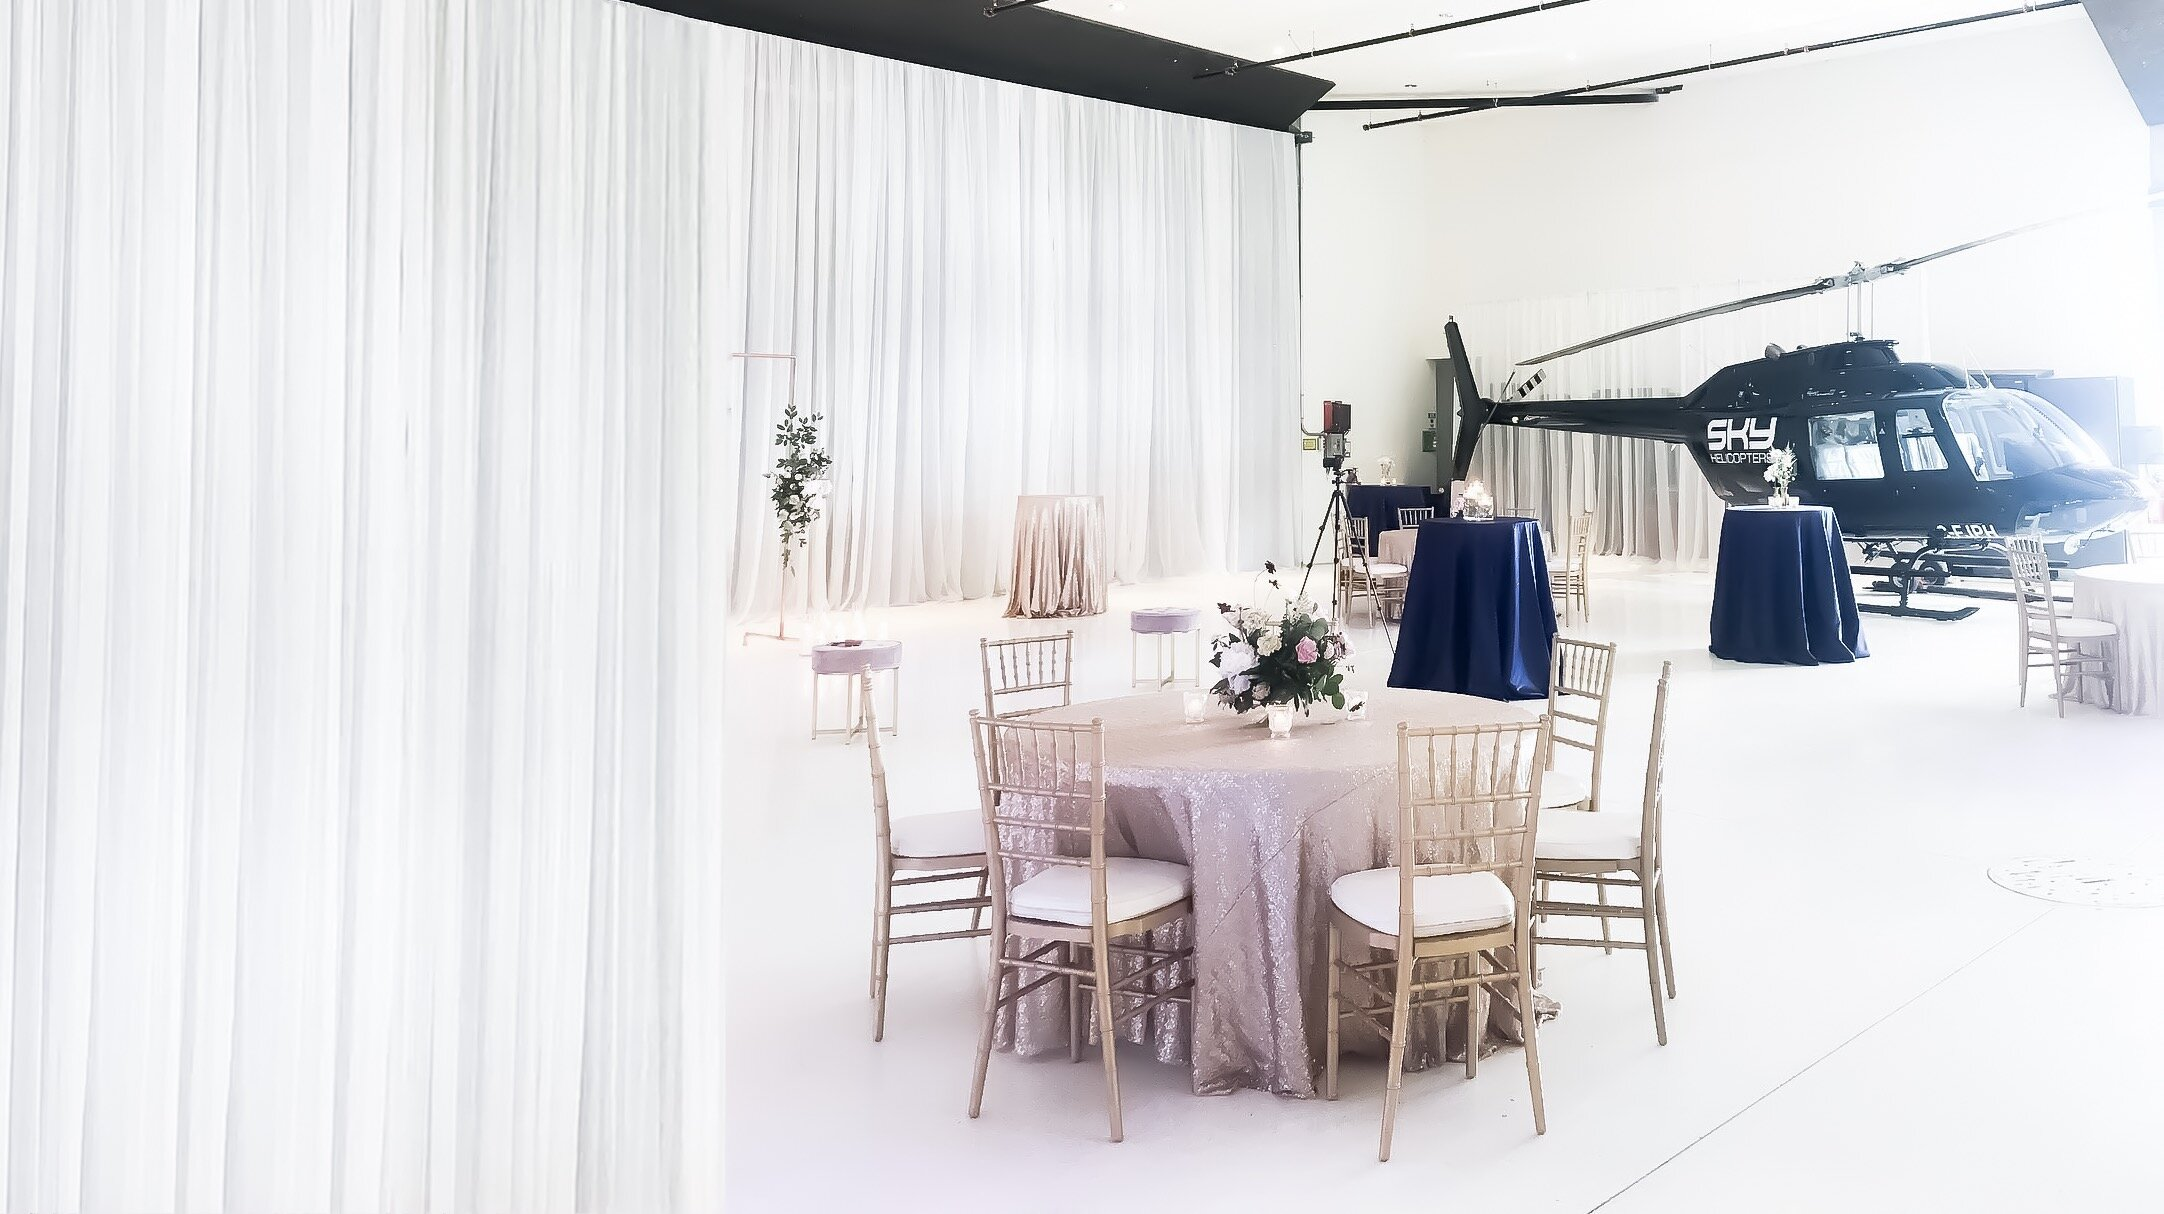 Award-Winning Boutique Event Planning and design - for the love of style and celebration.